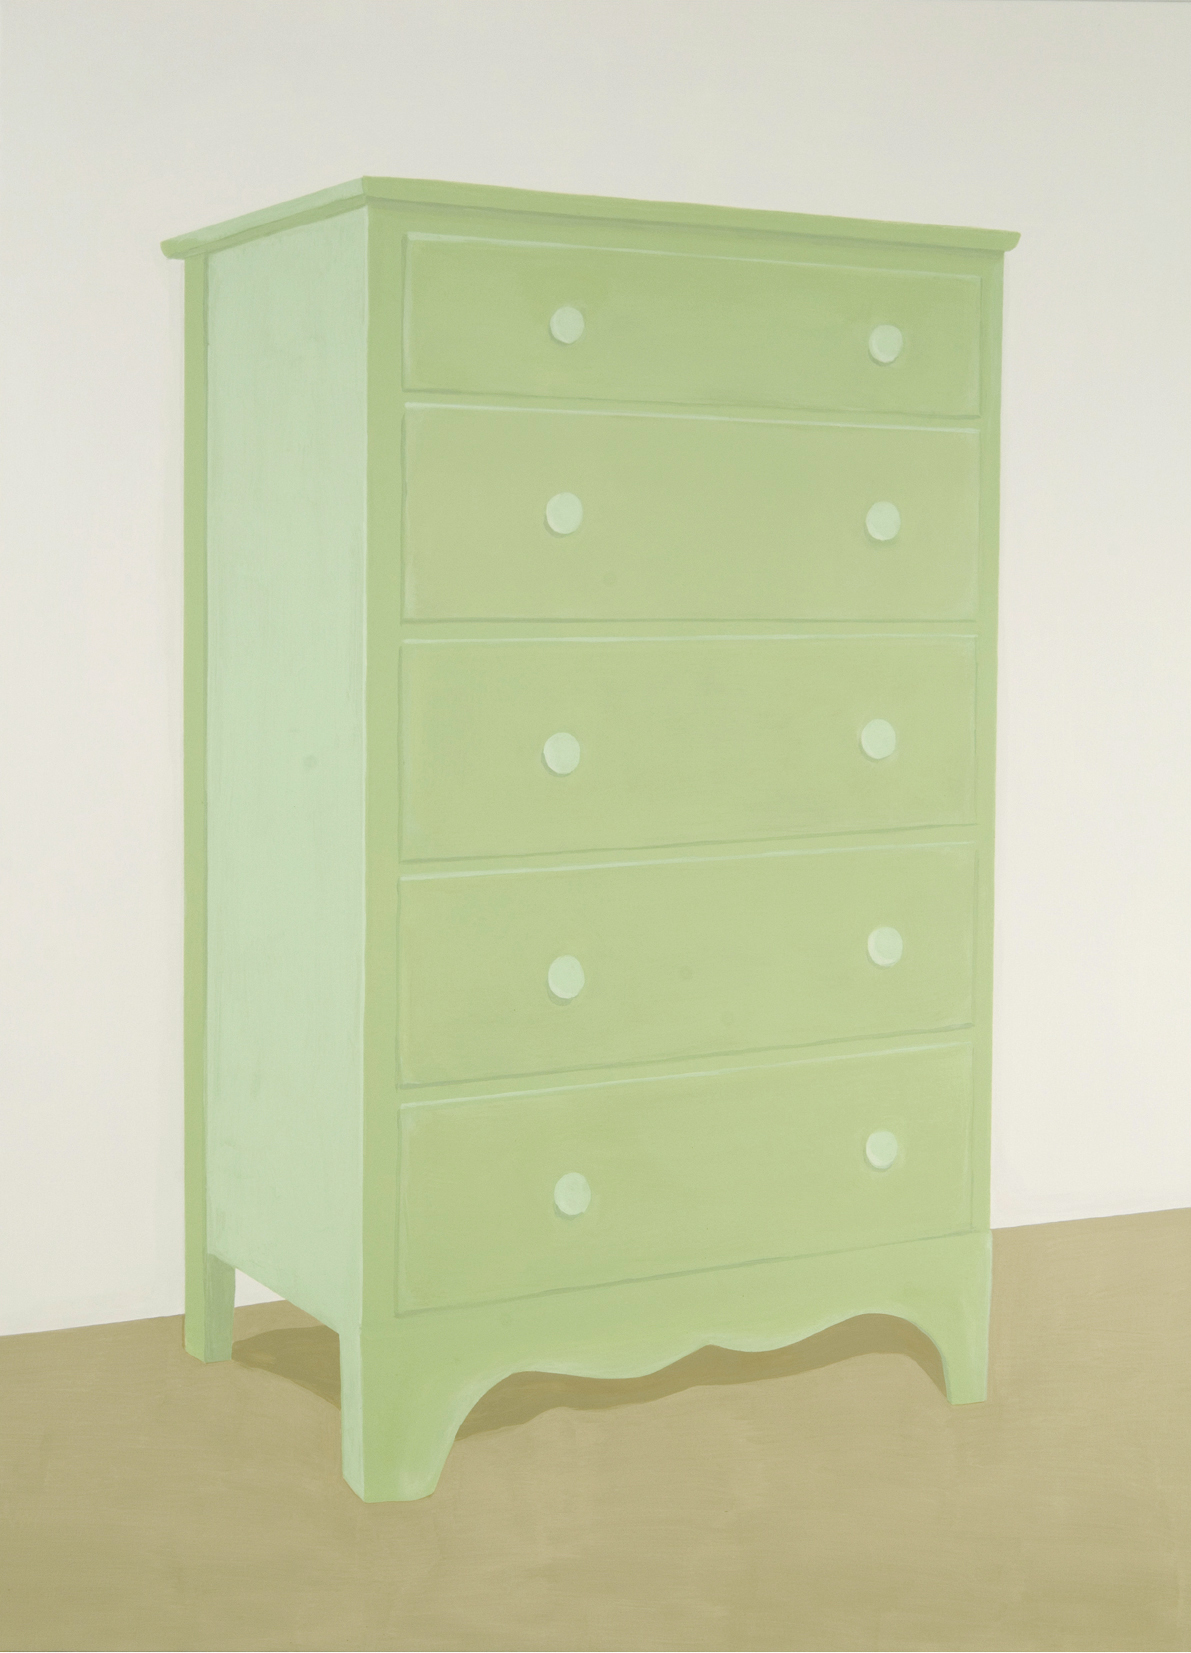 Green Dresser, acrylic on canvas, 79 x 58 inches, 2006.